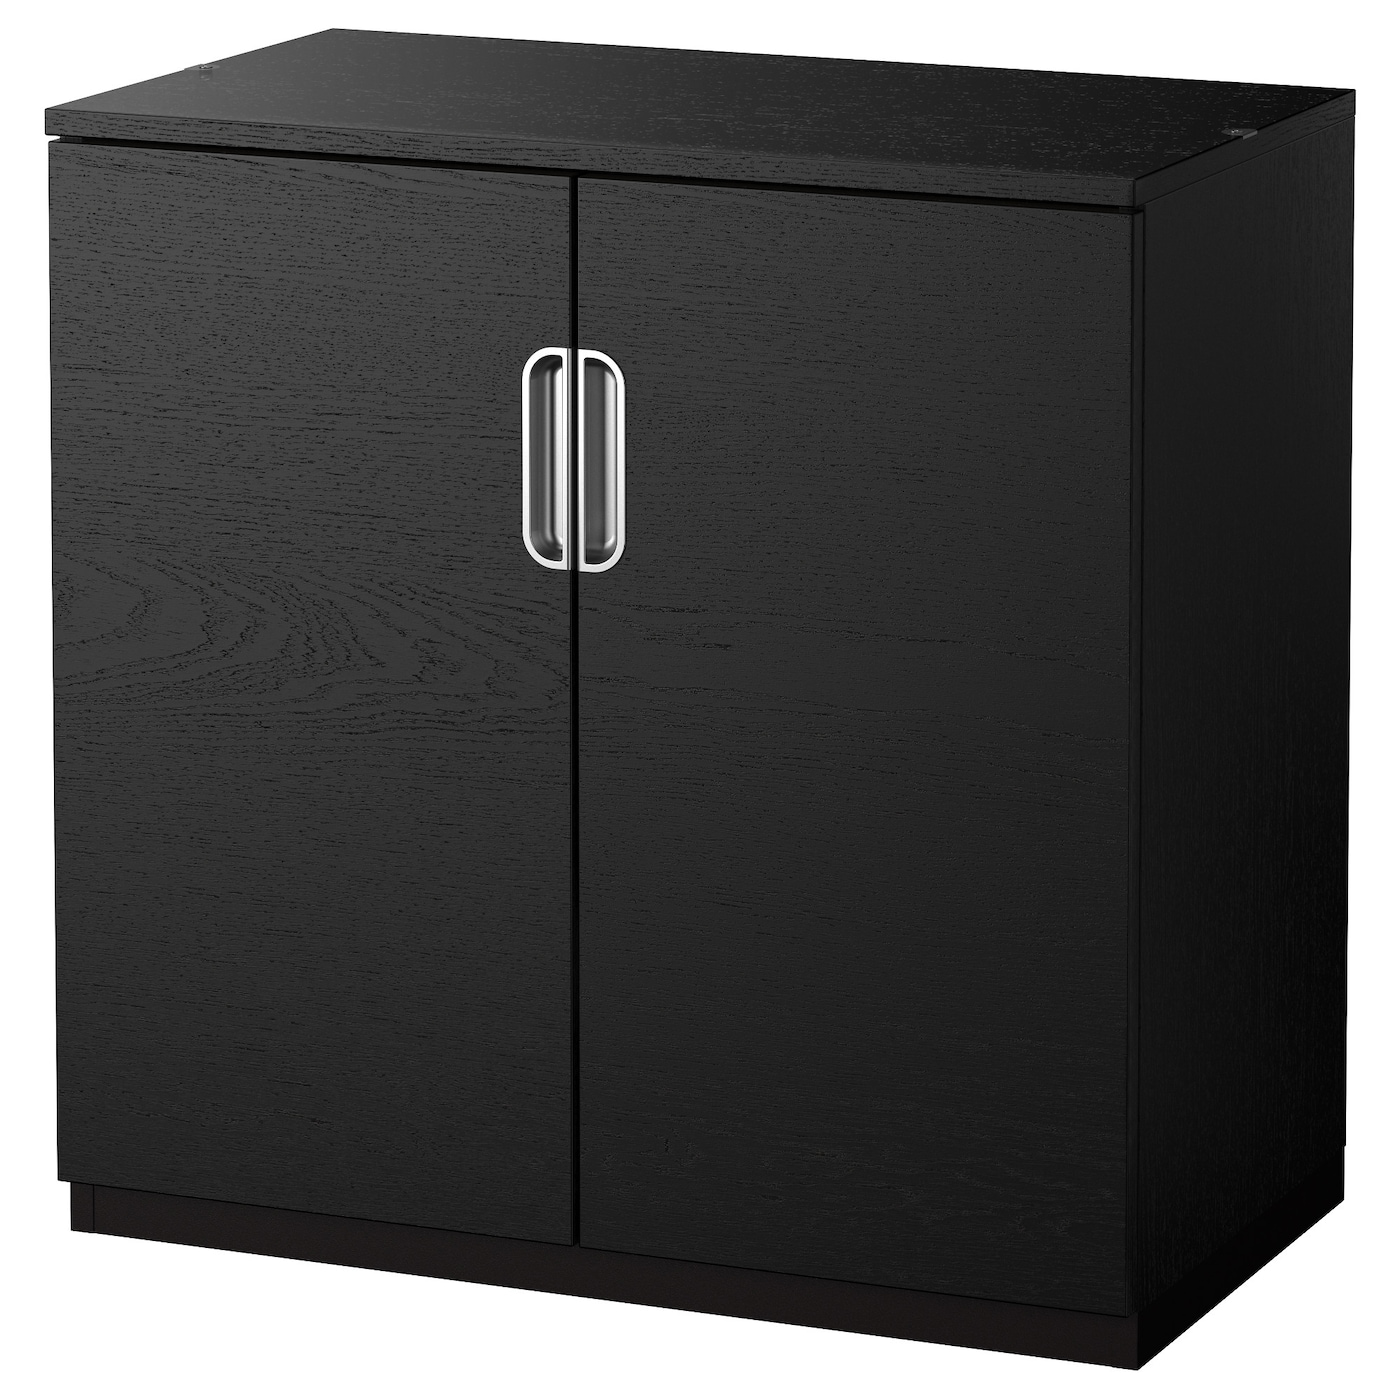 Galant cabinet with doors black brown 80x80 cm ikea for Black cabinet with doors